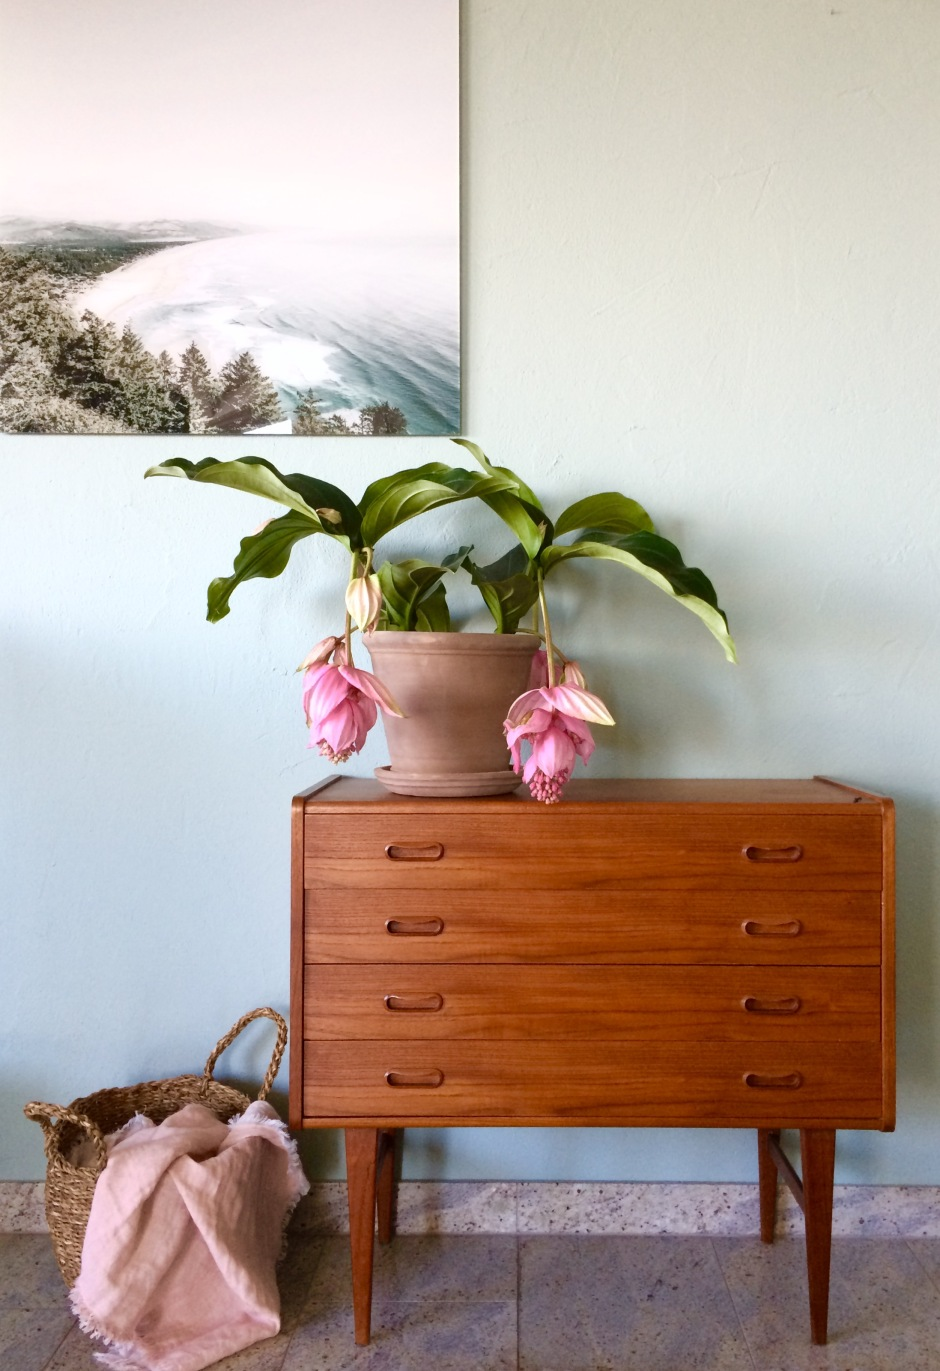 Teak danish chest of Drawers from Tatsiana Switserland bought at VAN ONS Mid century design furniture